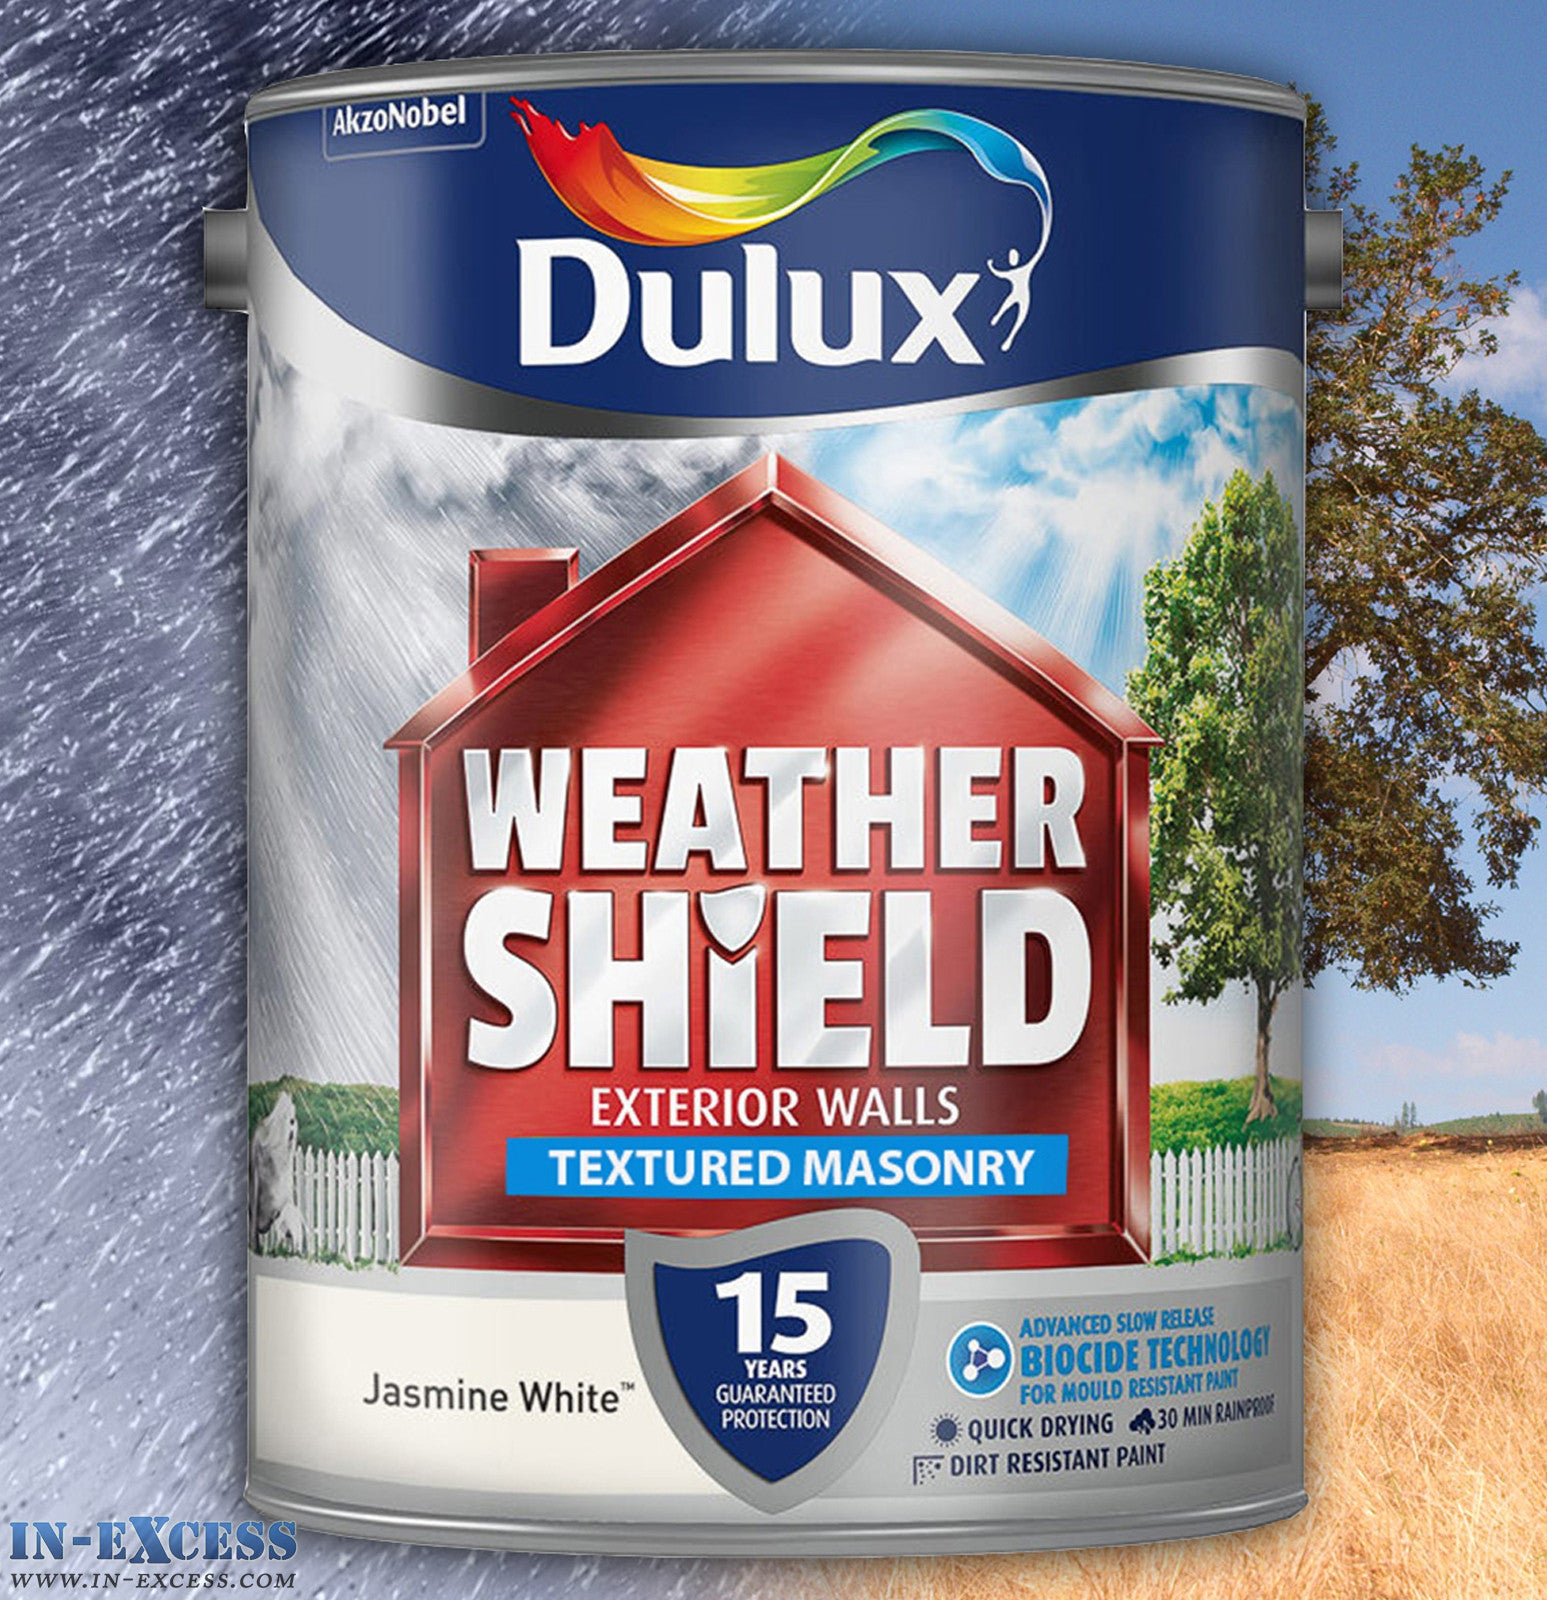 Dulux Weather Shield Exterior Walls Masonry Paint Textured Jasmine